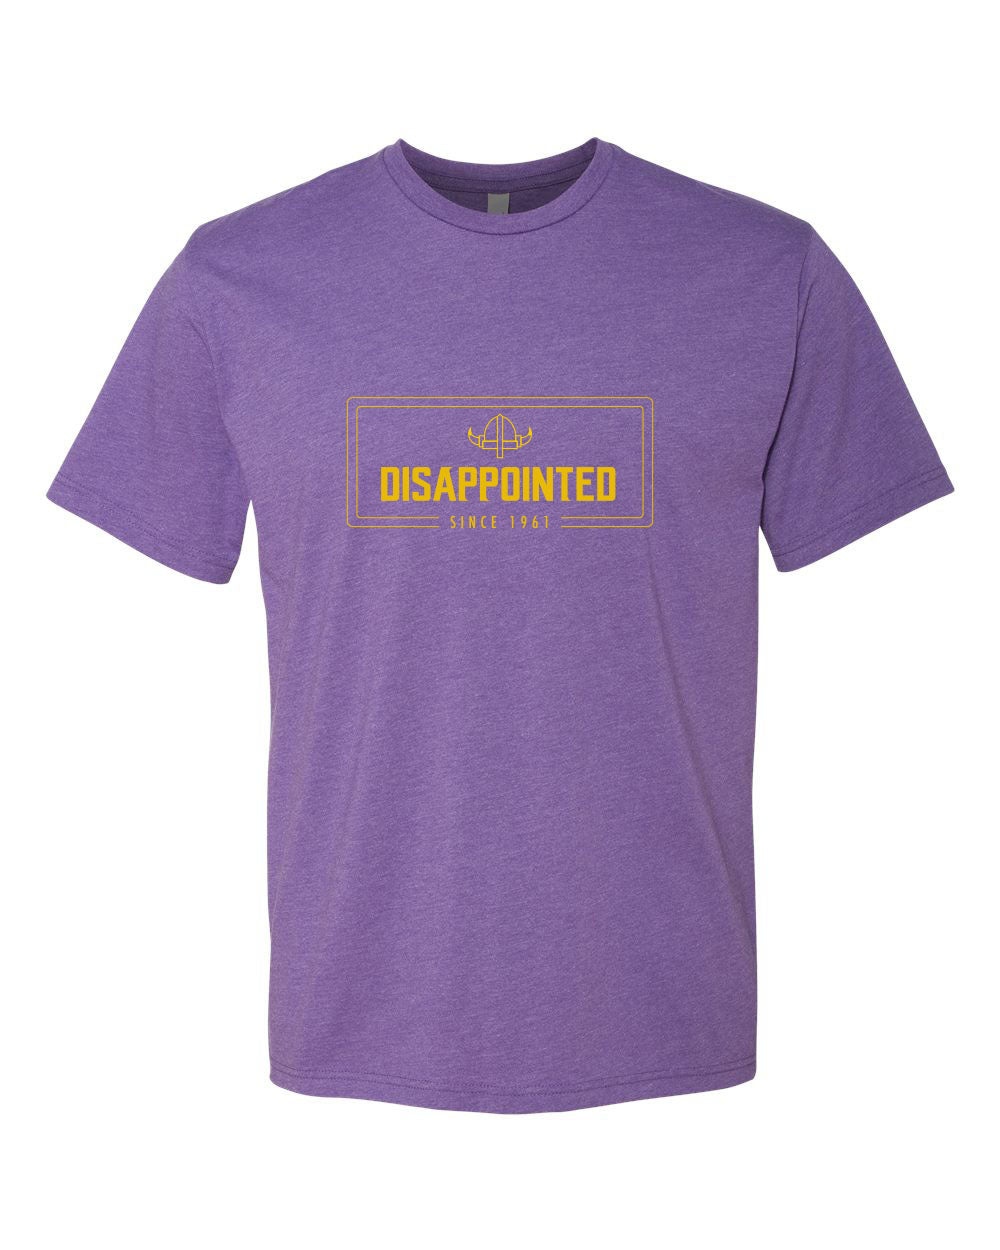 Disappointed Since 1961 Vikings - Northmade Co